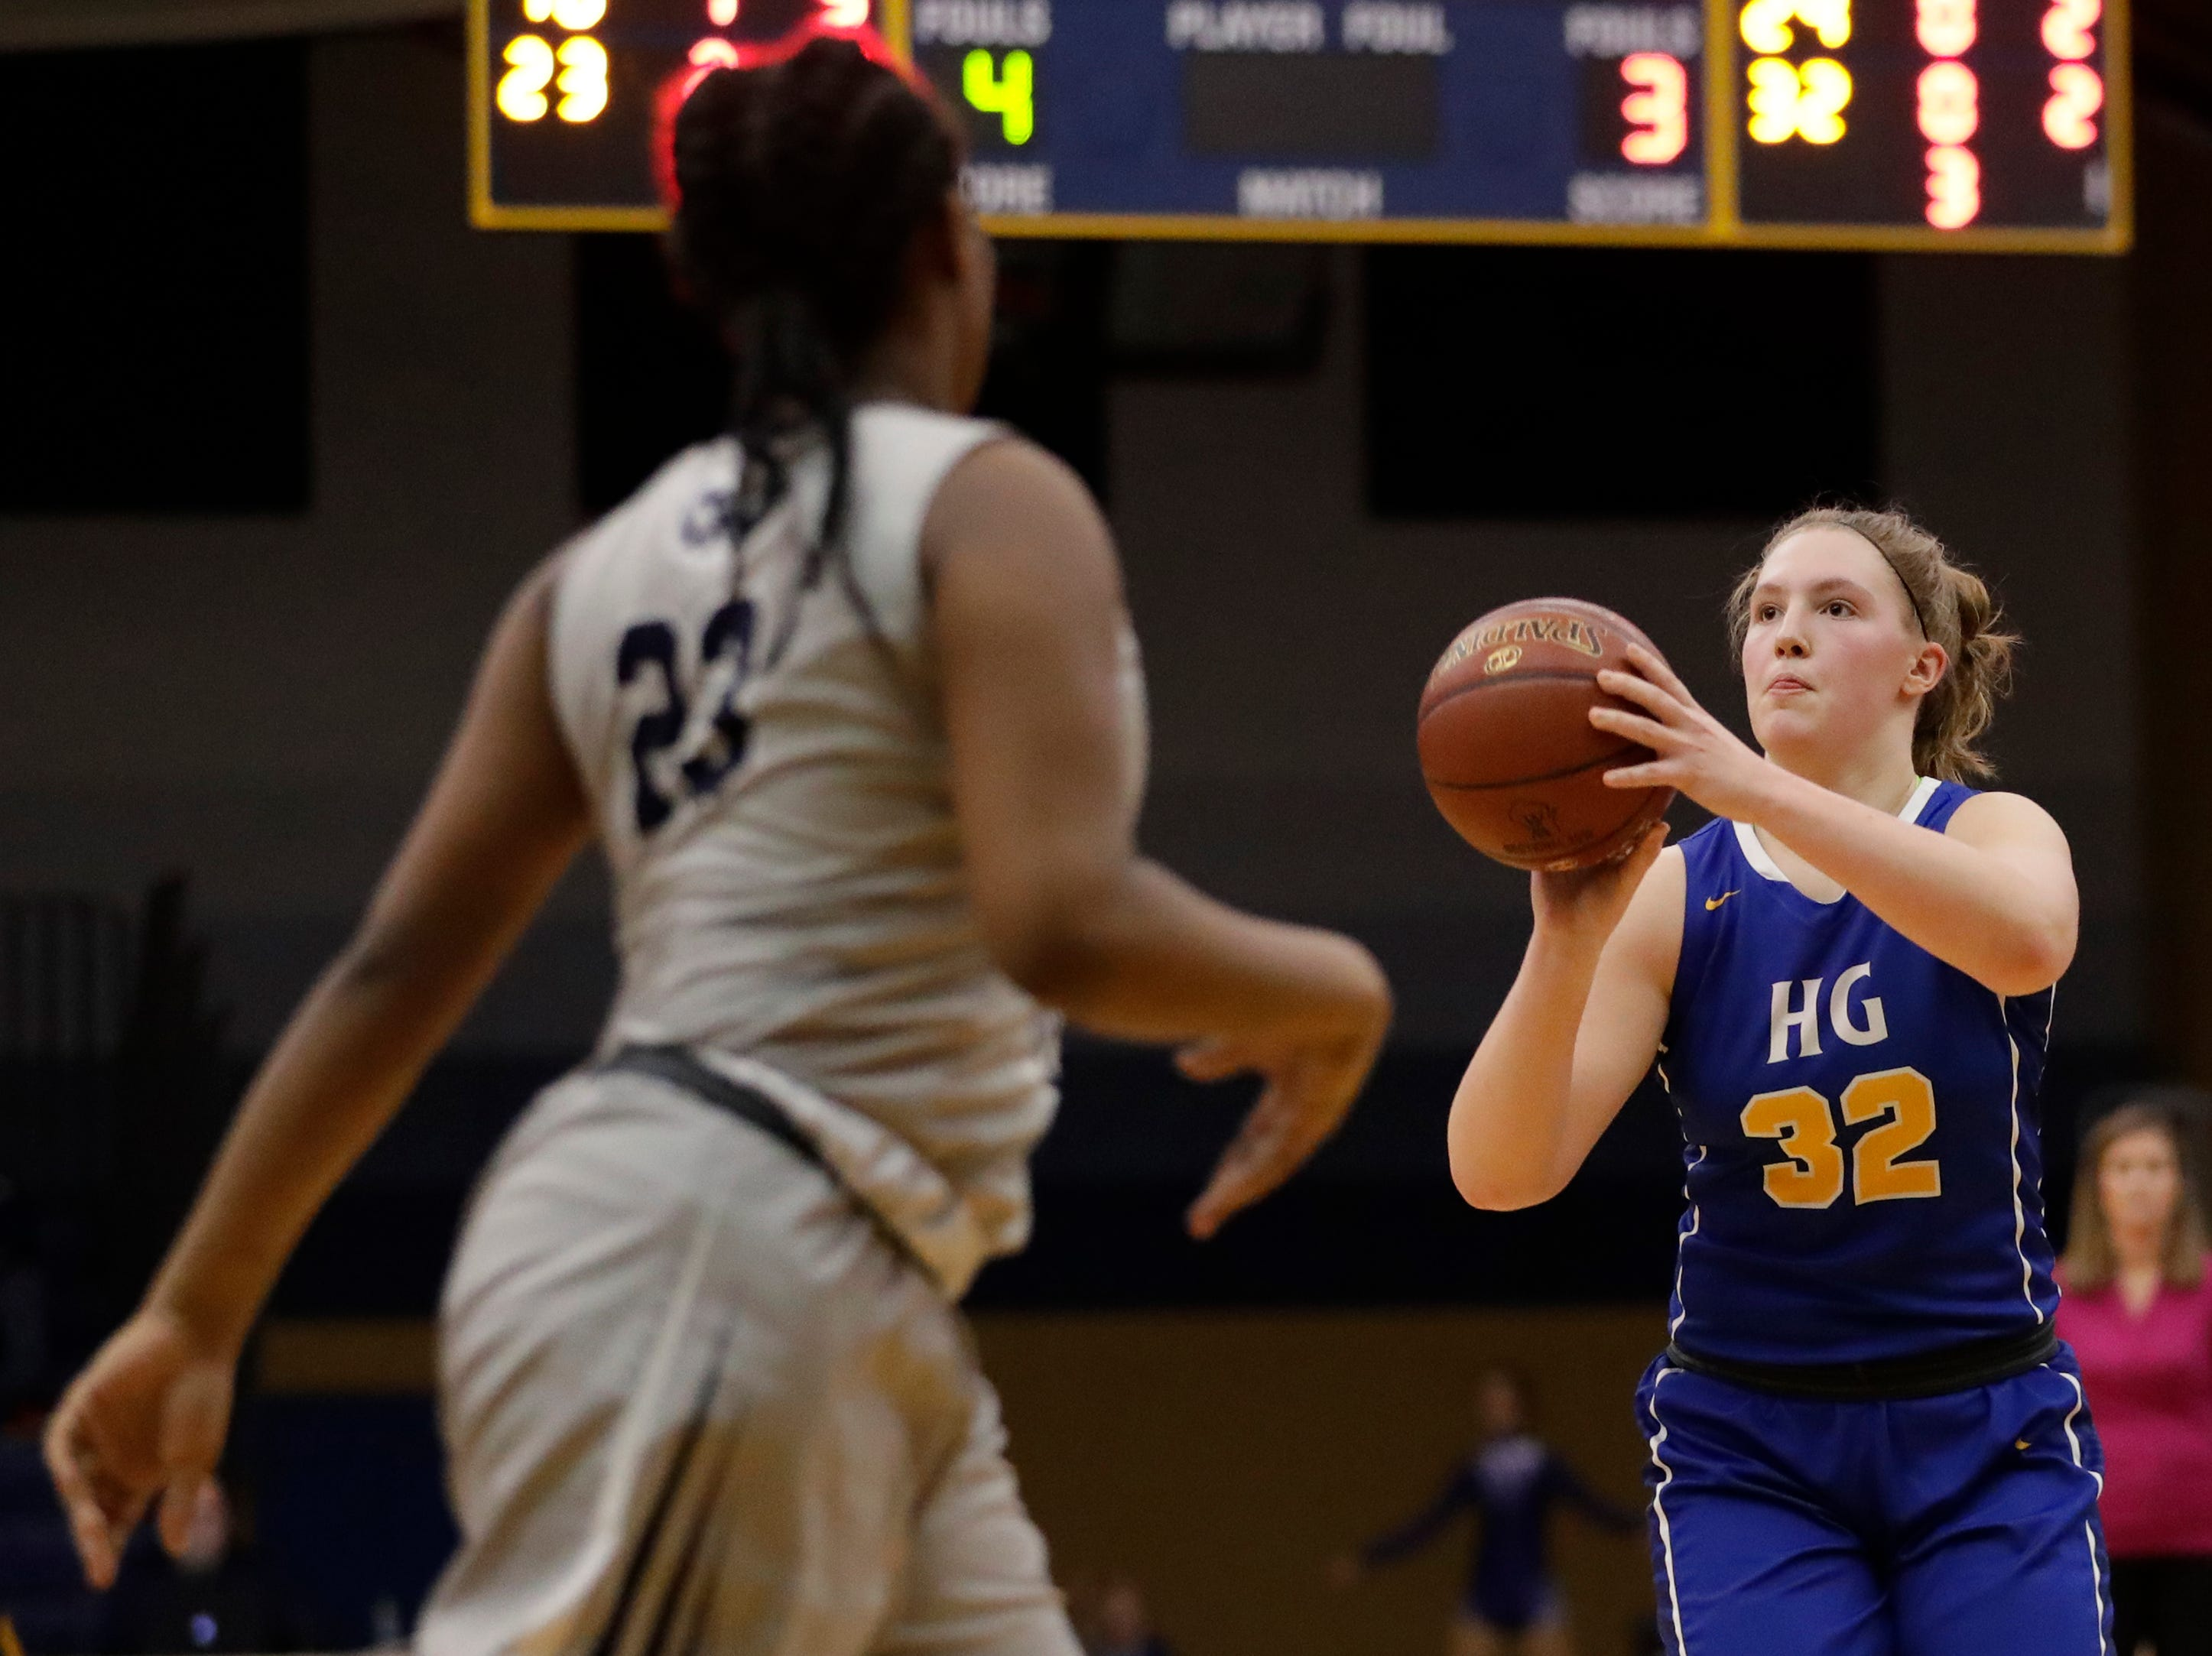 Howards Grove's Madalynn Near shoots against Milwaukee Academy of Science during a WIAA Division 4 sectional championship game at Sheboygan North High School Saturday, March 2, 2019, in Sheboygan, Wis. Joshua Clark/USA TODAY NETWORK-Wisconsin